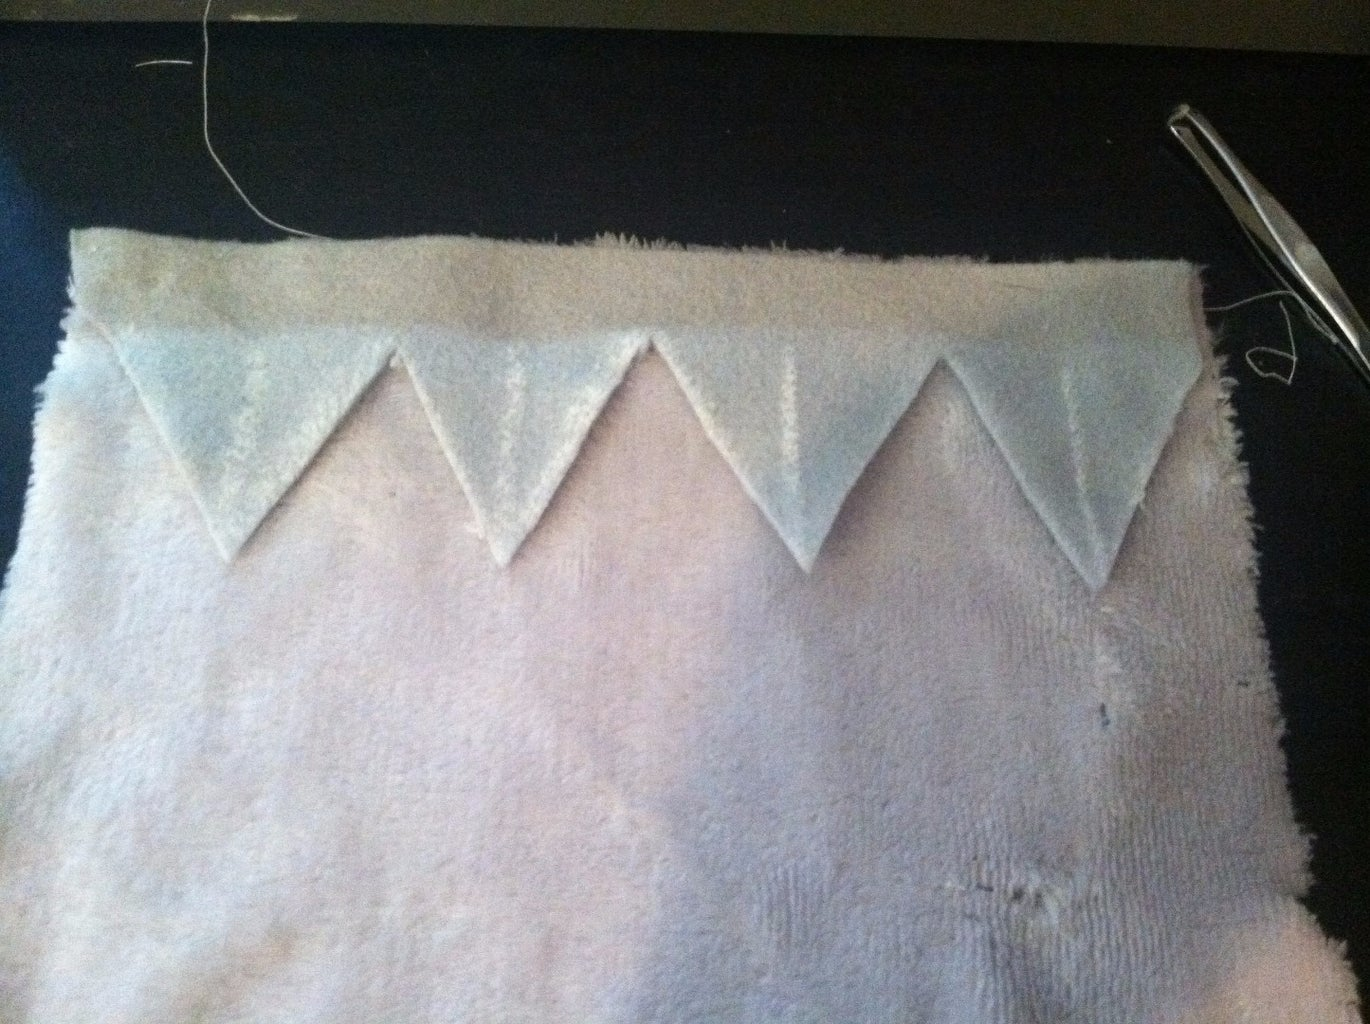 Sewing on the Spikes